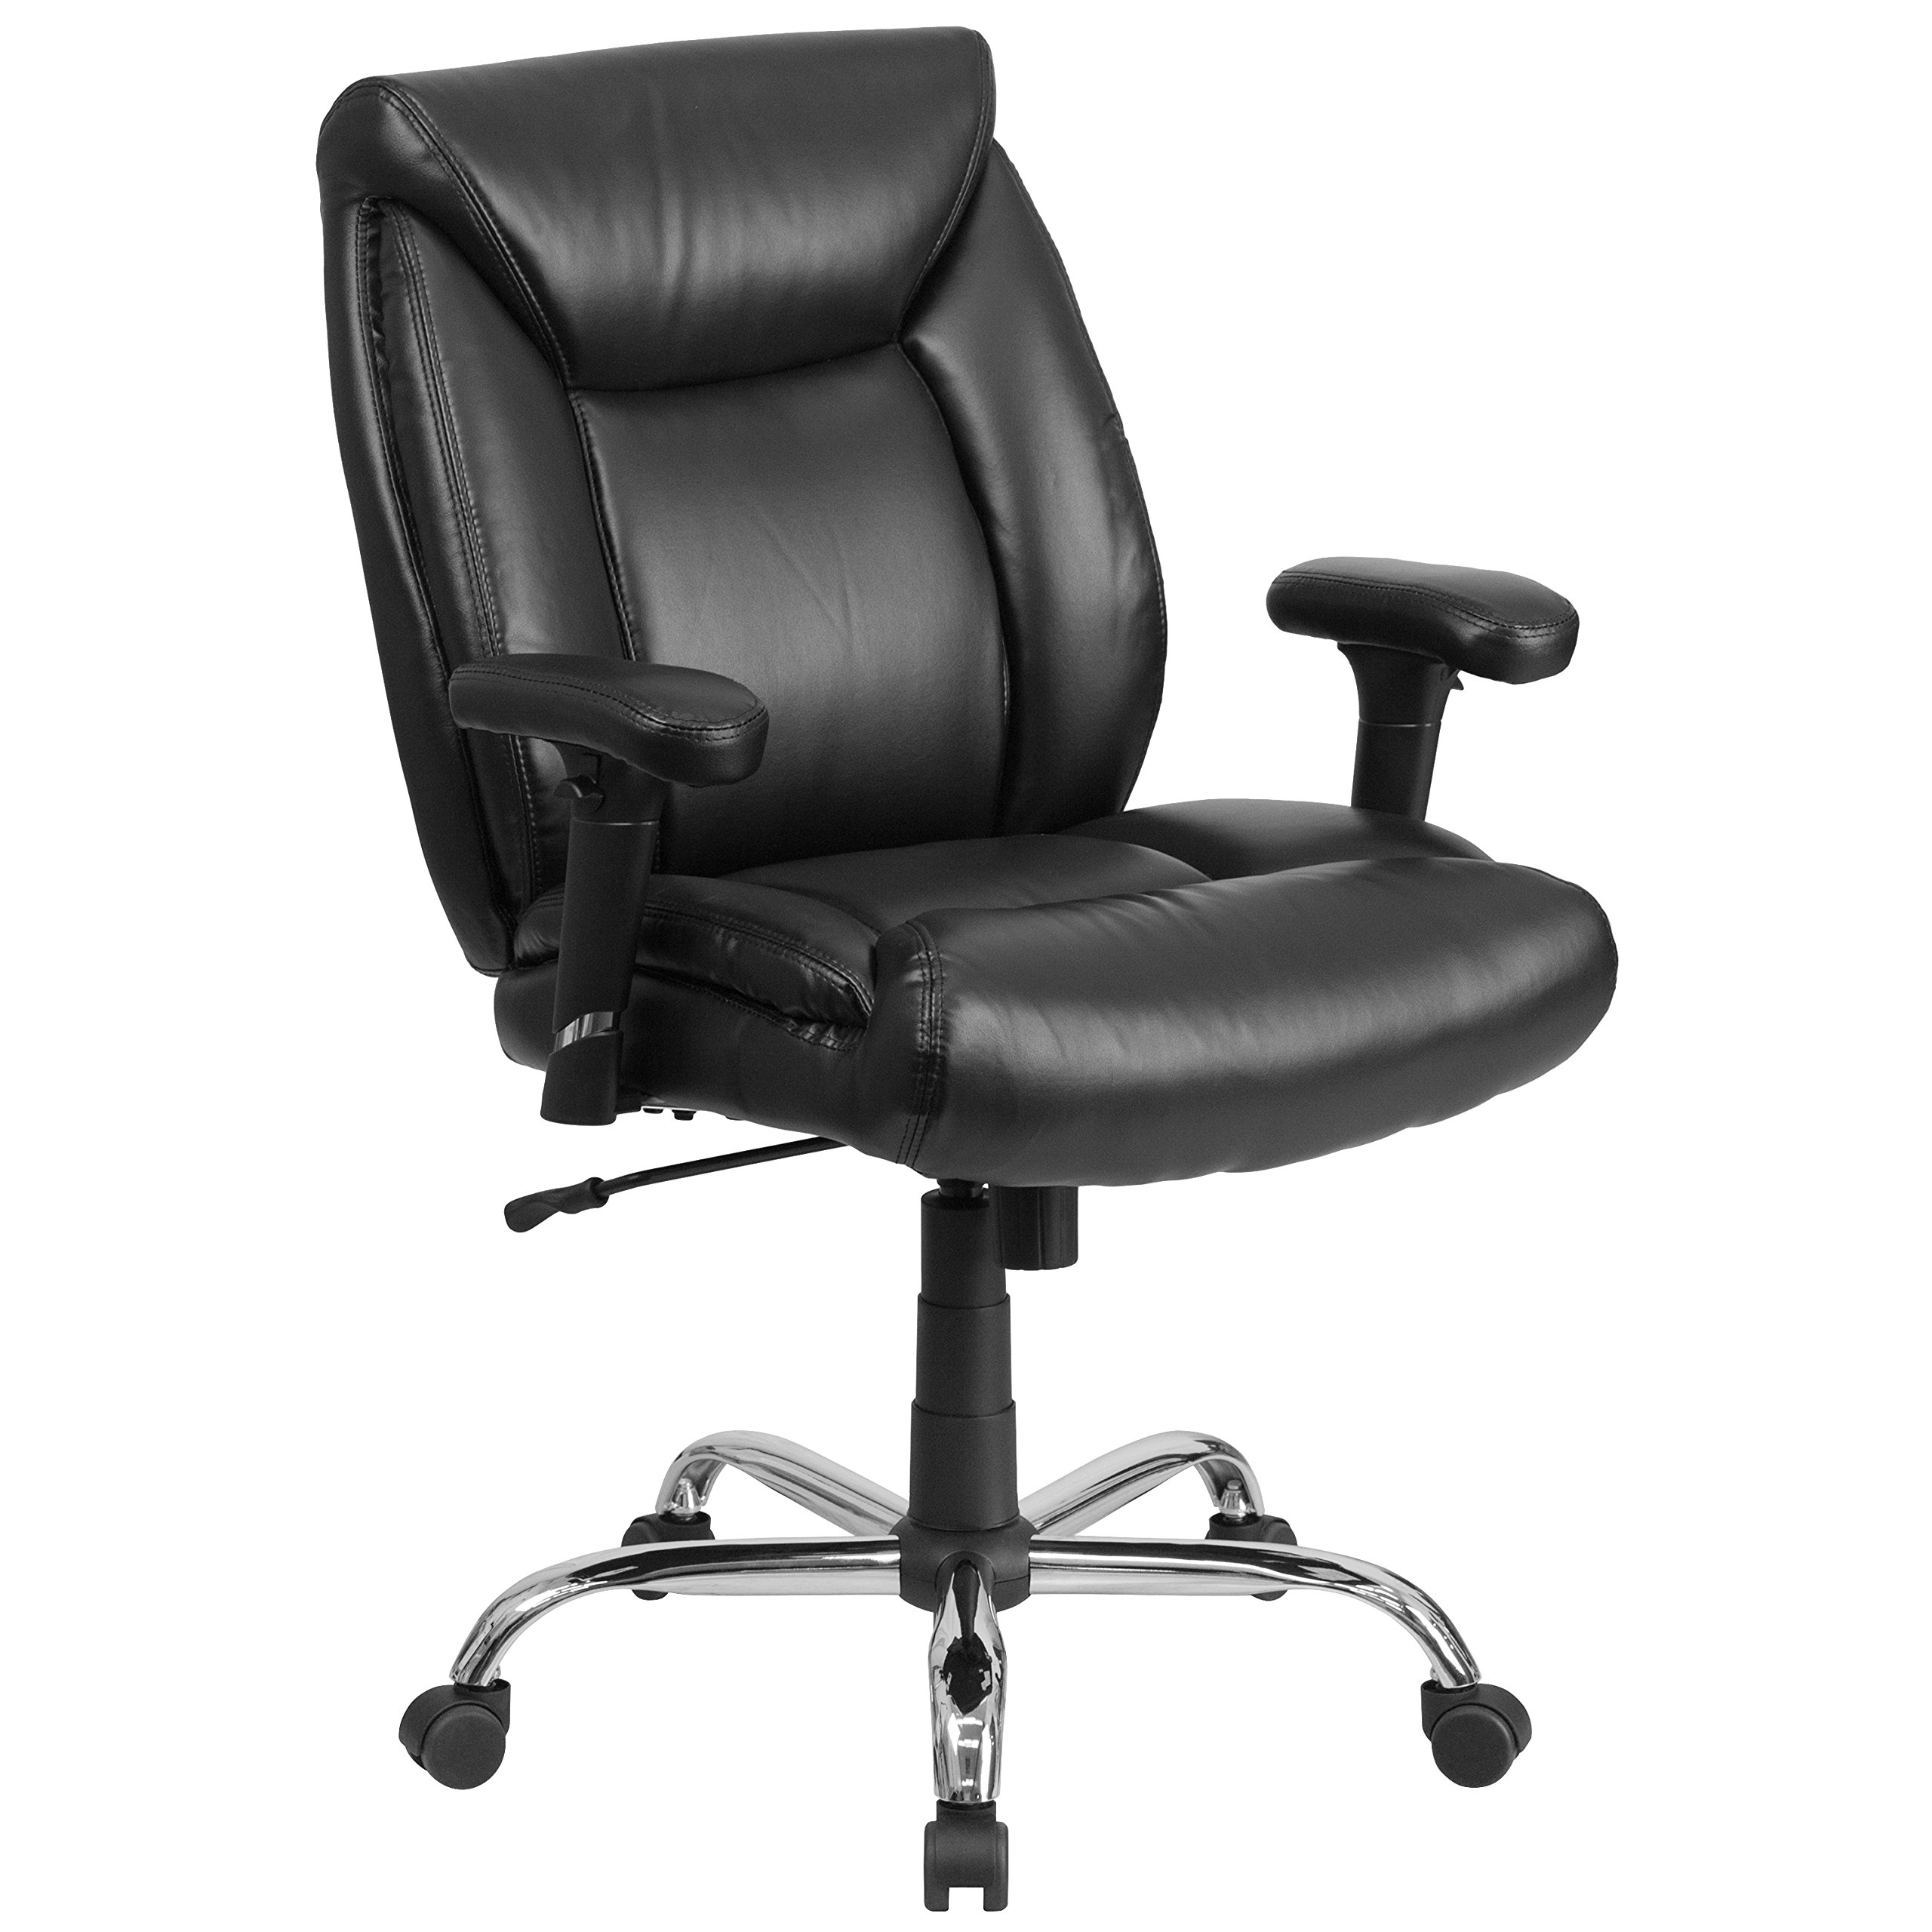 Flash Furniture HERCULES Series Big & Tall 400 lb. Rated Black Leather Swivel Task Chair with Adjustable Arms by Flash Furniture